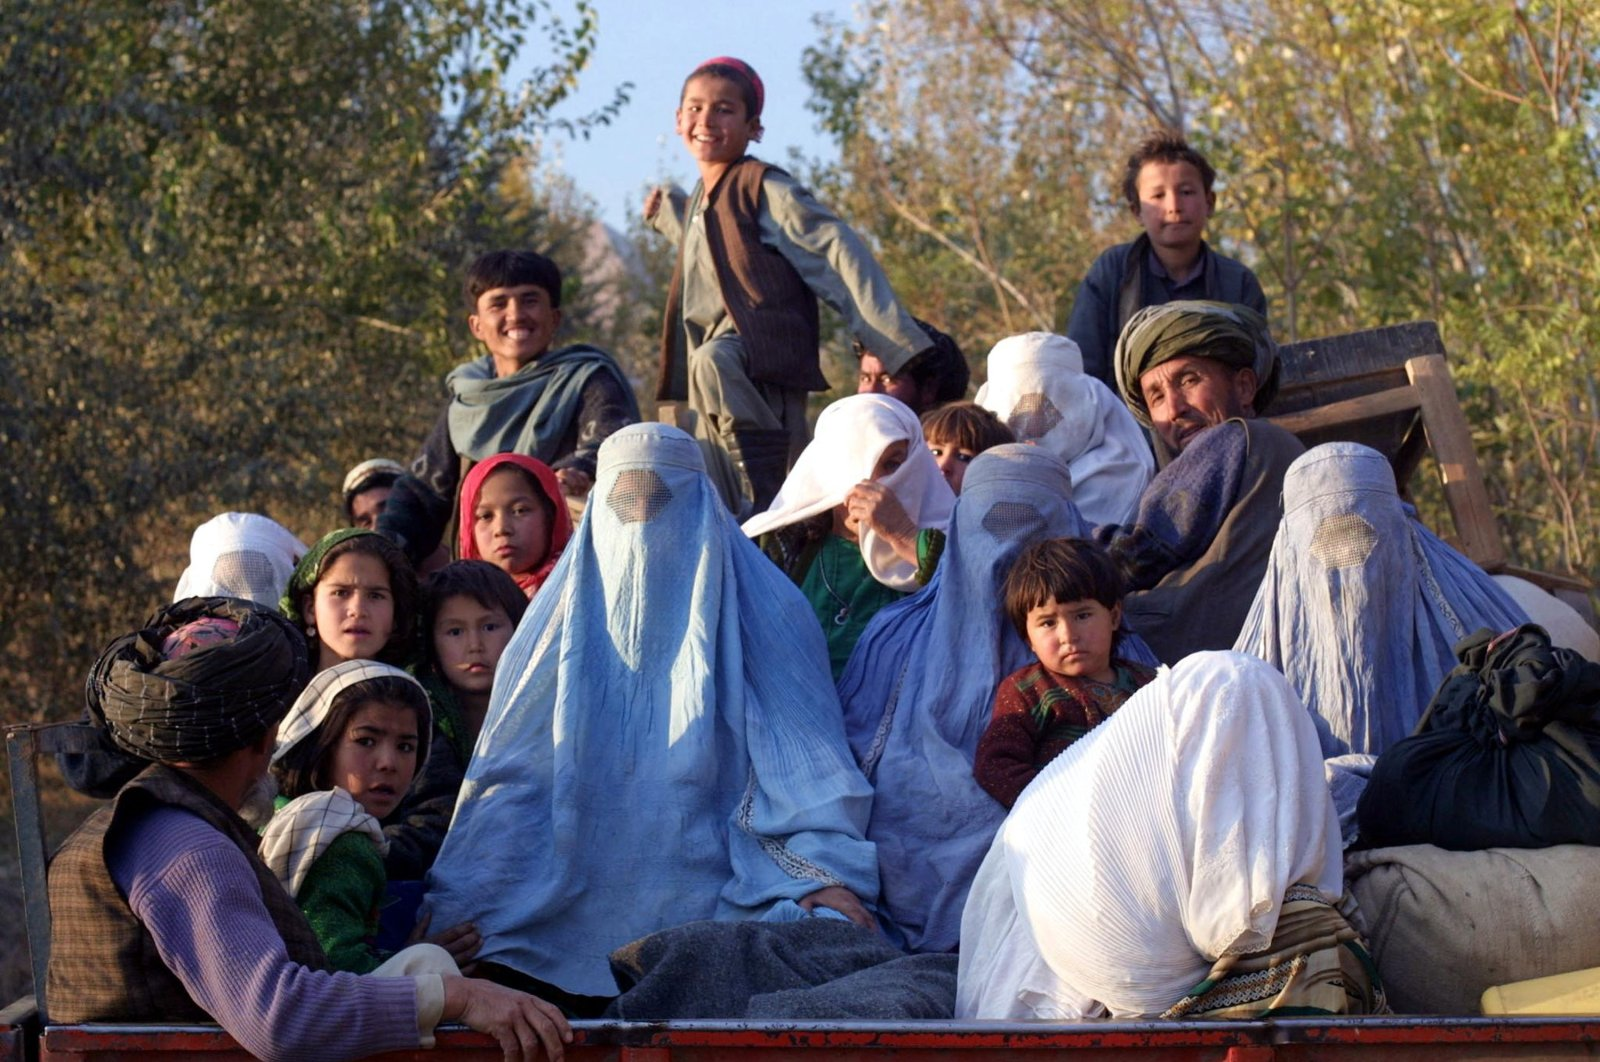 Residents of the northeastern Afghan village of Kalaqata in Takhar province fleeing the frontline area as U.S. fighter planes bomb Taliban positions nearby, Nov. 4, 2001. (AFP Photo)